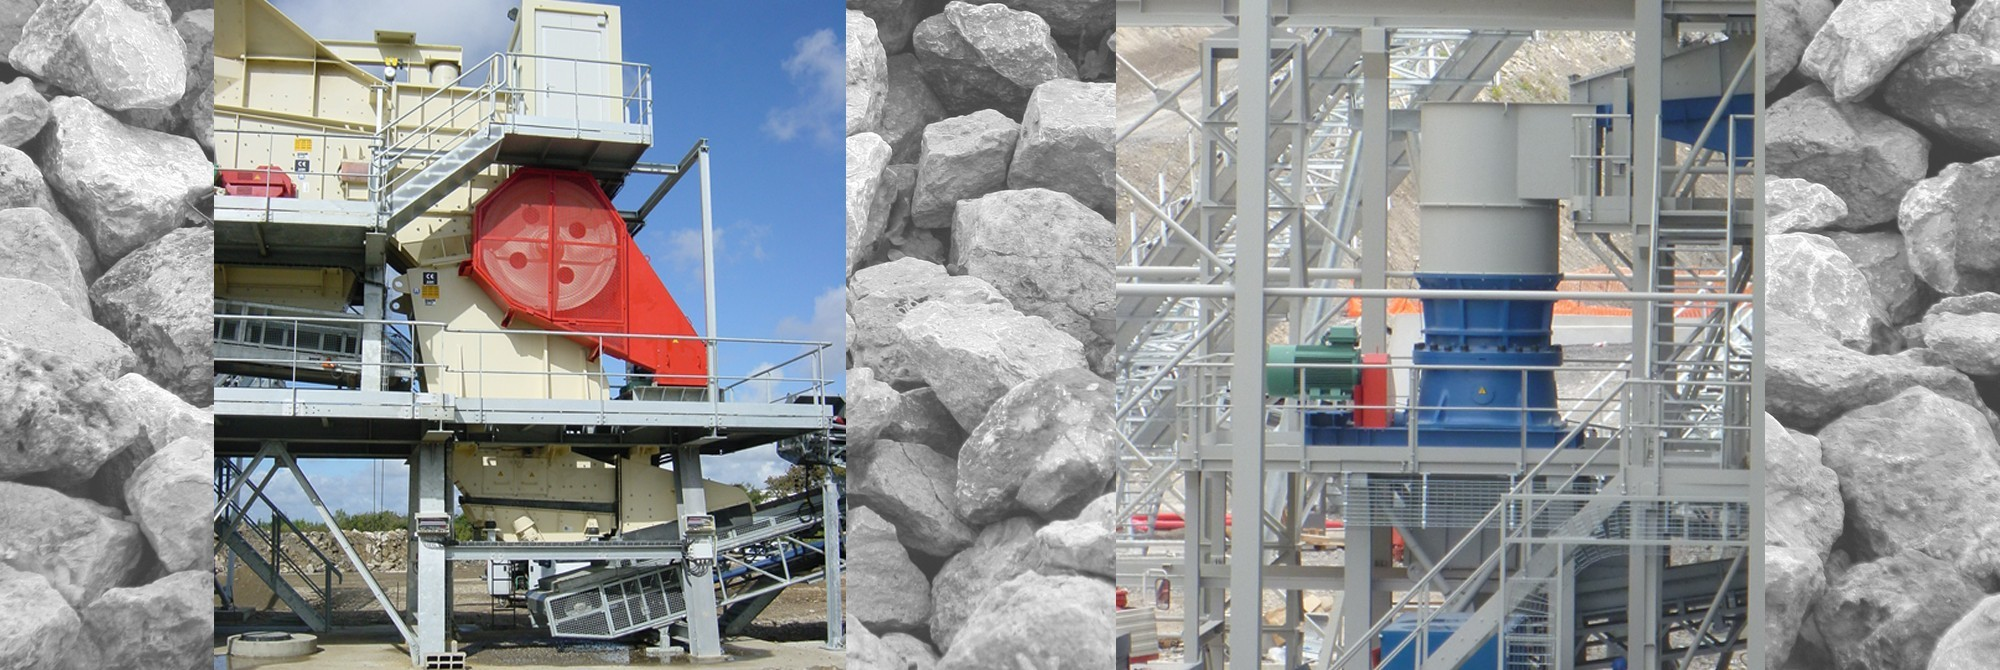 crushers aggregates industry